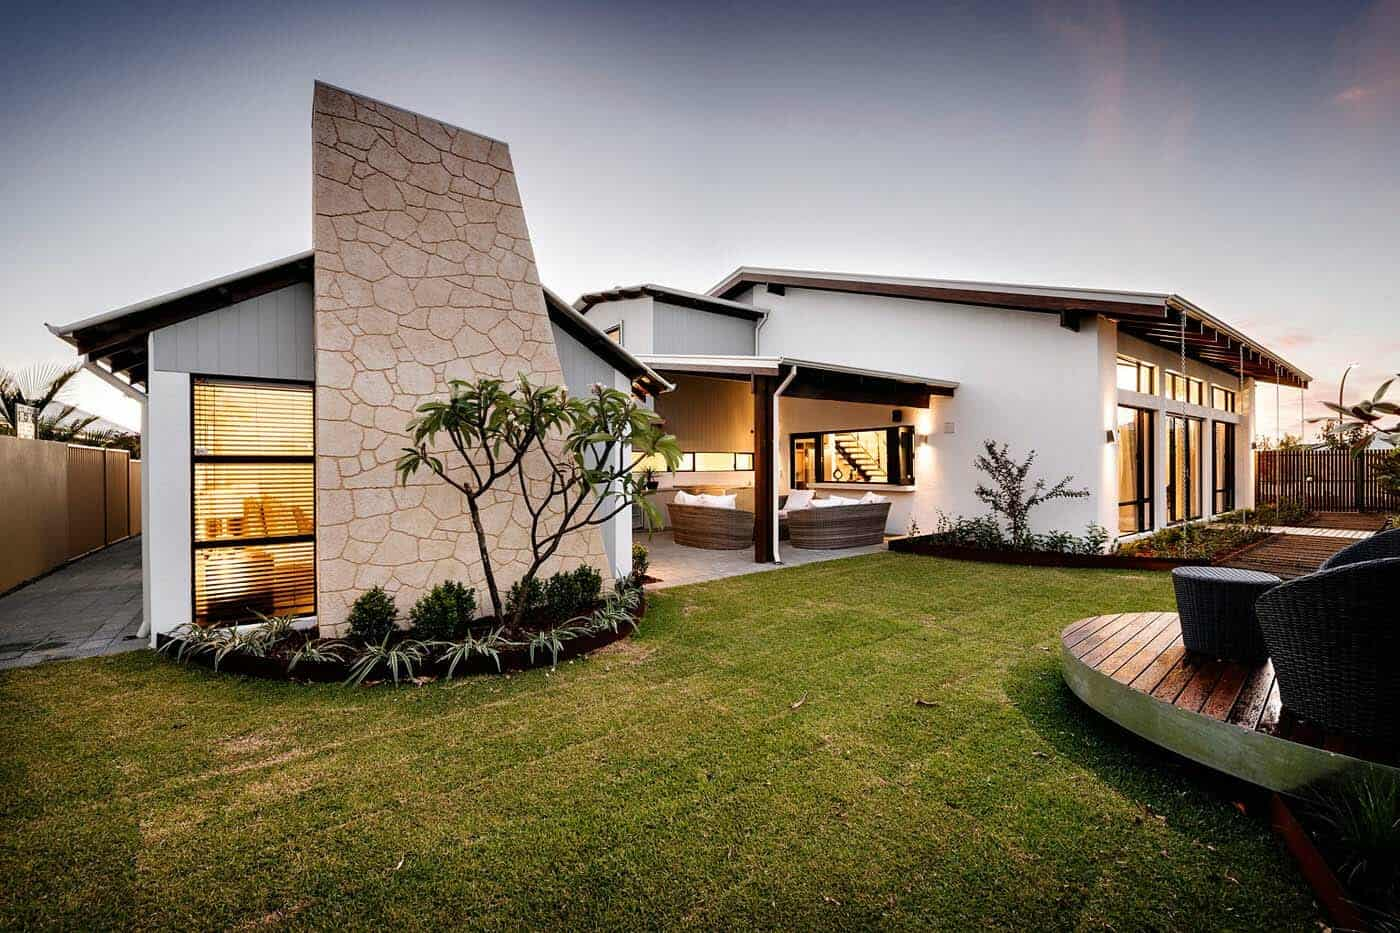 Contemporary Family Home-The Rural Building Company-31-1 Kindesign